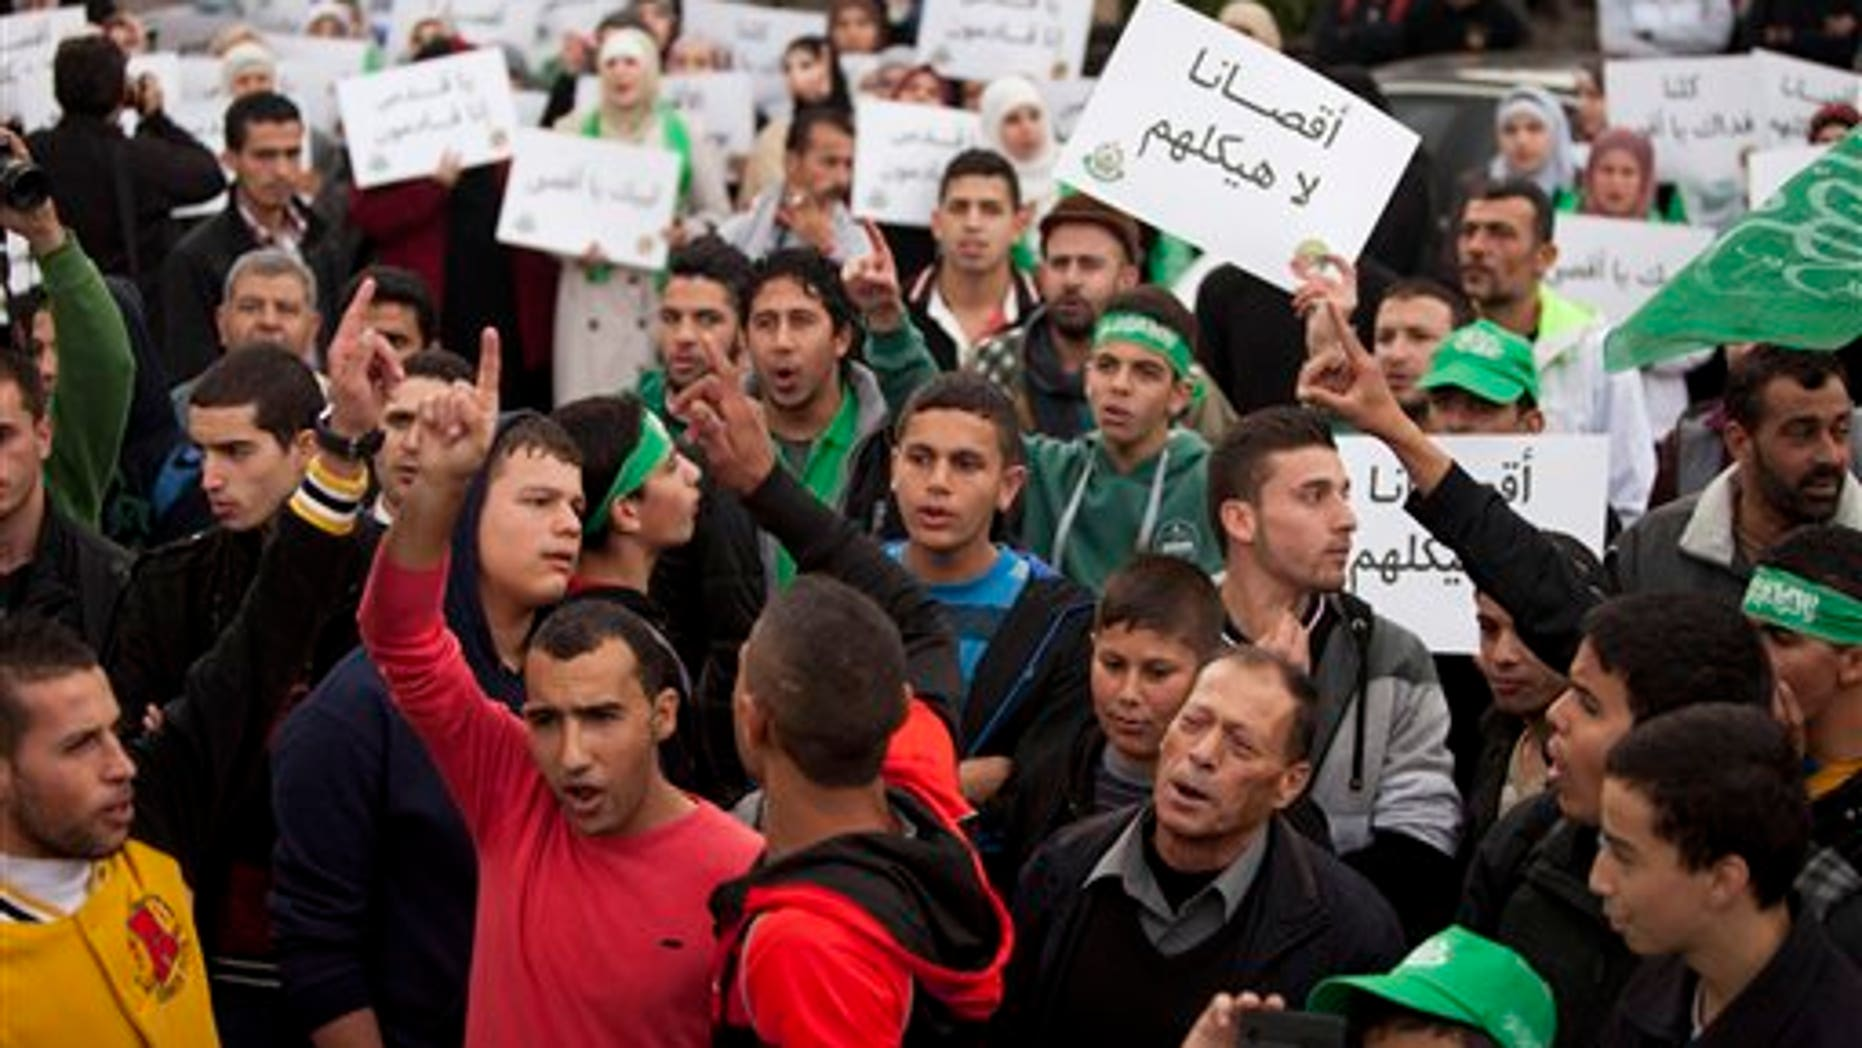 """Oct. 17, 2014: Palestinian supporters of the Islamist movement Hamas shout slogans and hold  pears with a slogan written in Arabic, """"our Al-Aqsa is not their temple,"""" during a protest against Israeli restrictions at the Al-Aqsa Mosque, in the West Bank City of Ramallah."""